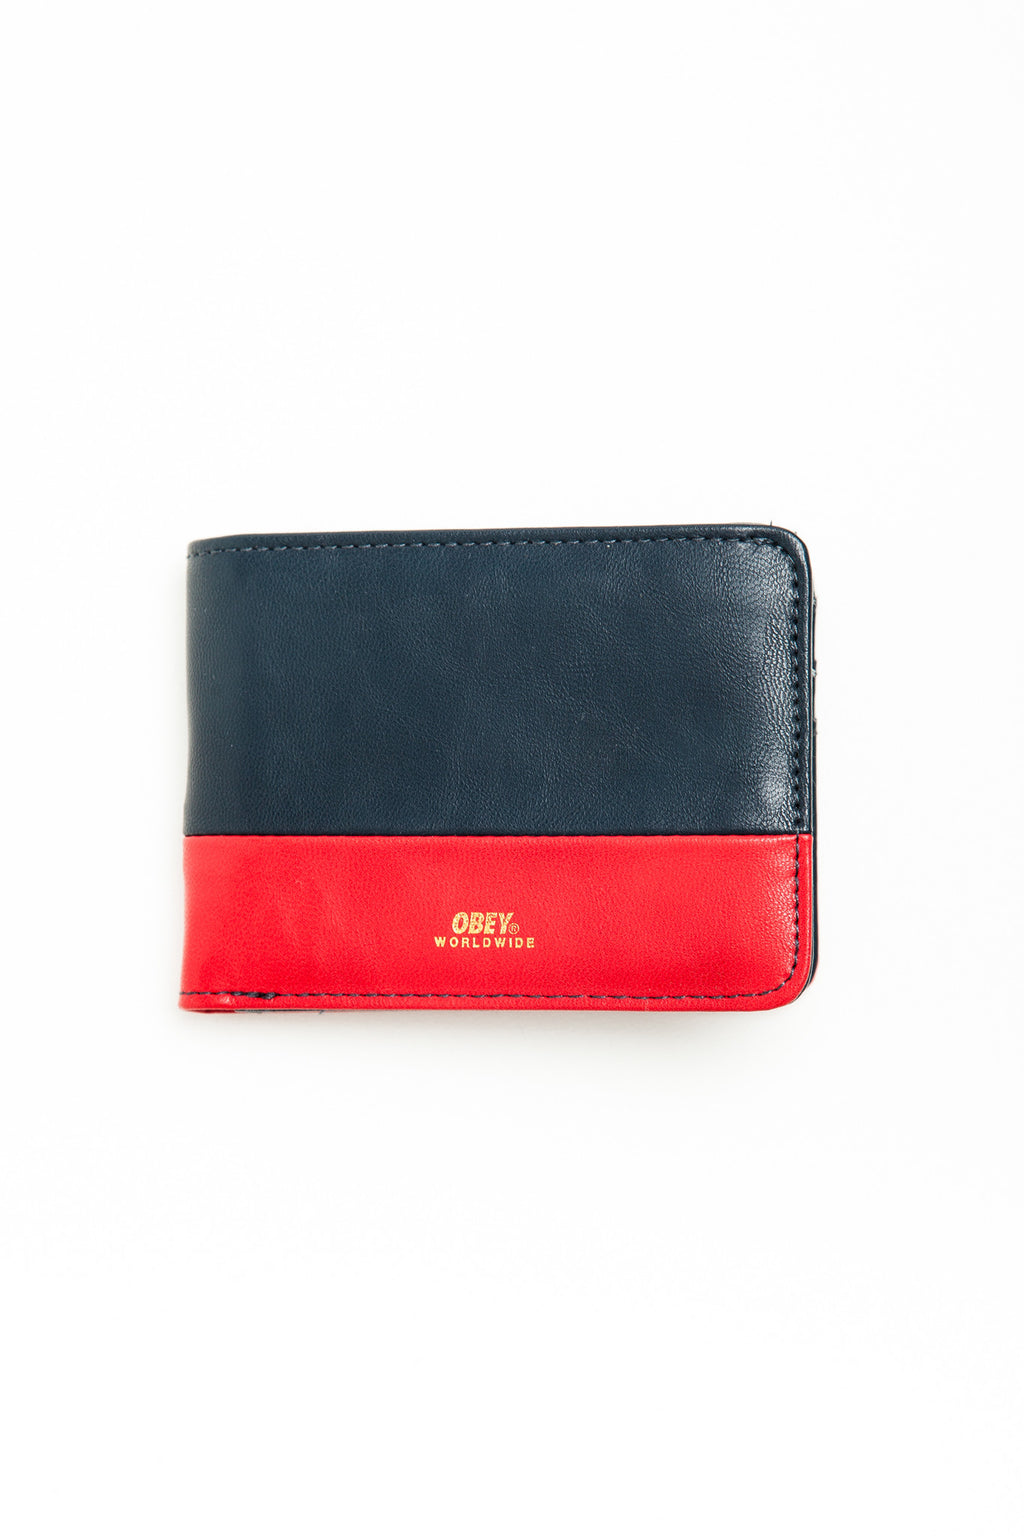 OBEY - Gentry Deuce Bi-Fold Wallet, Navy/Red - The Giant Peach